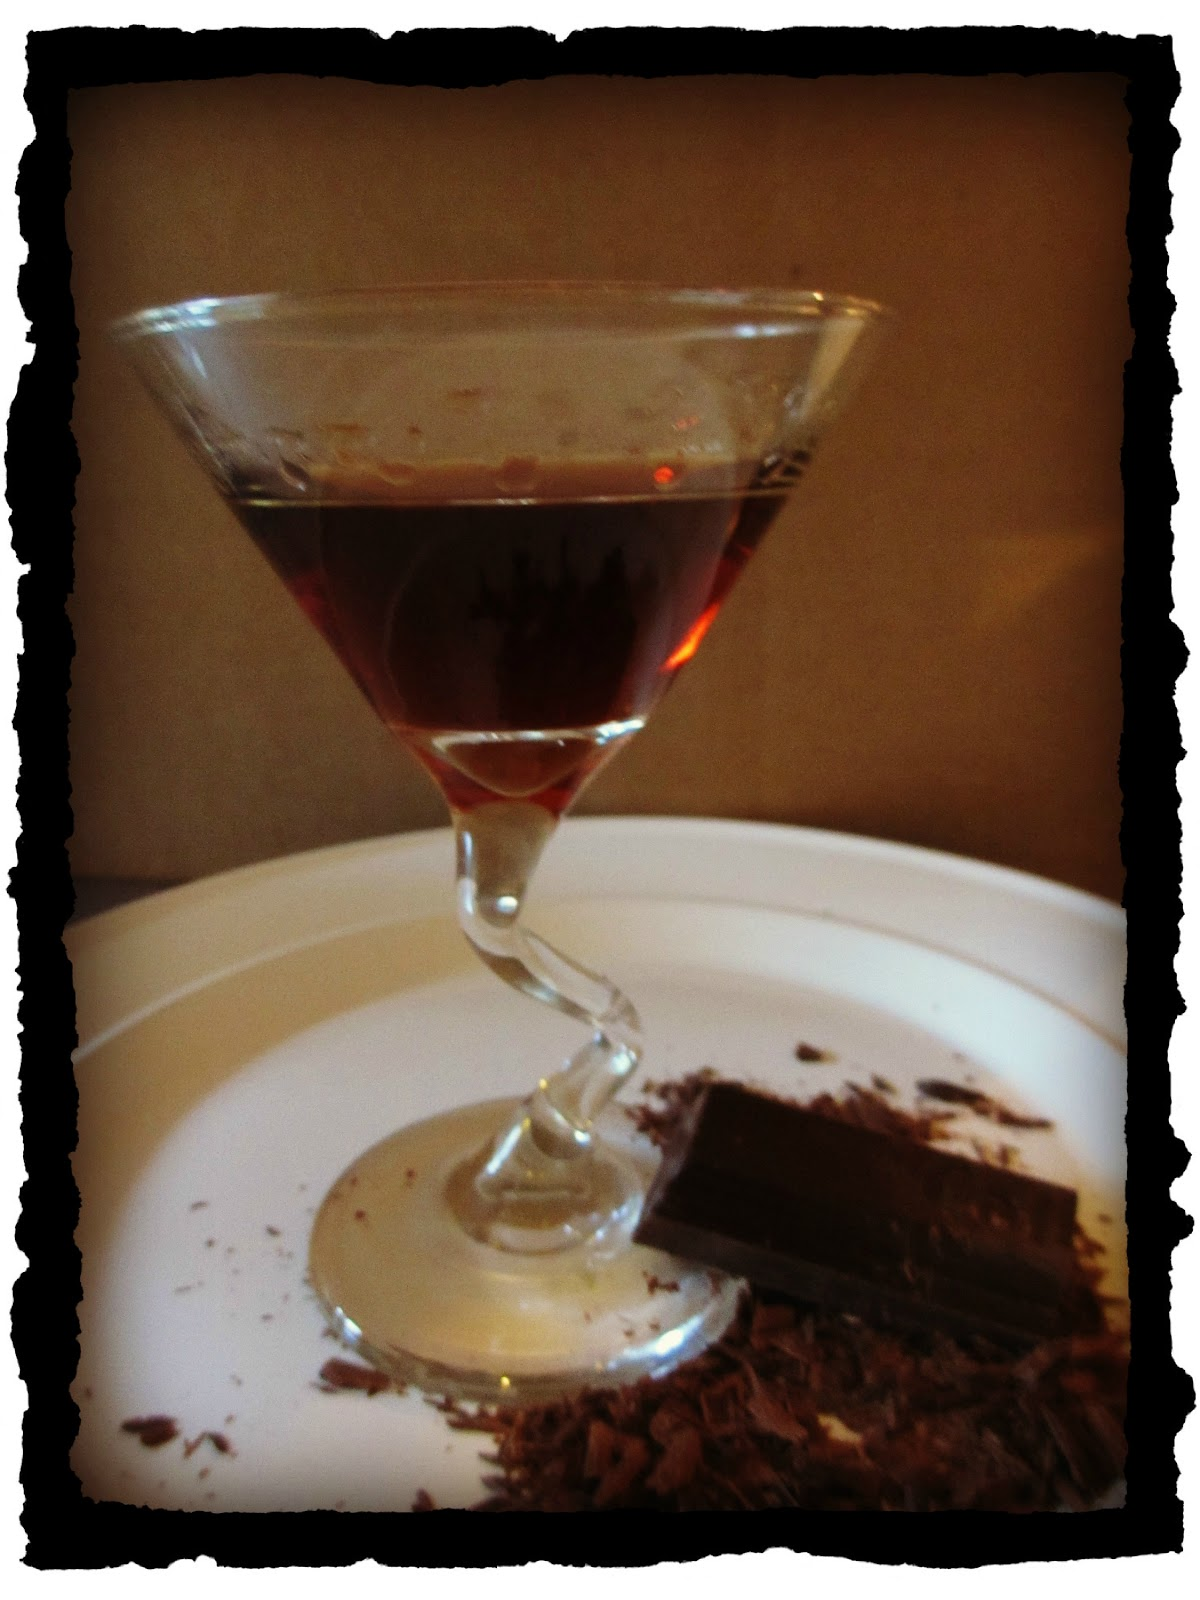 Dying for Chocolate: How to Make Your Own Chocolate Liqueur